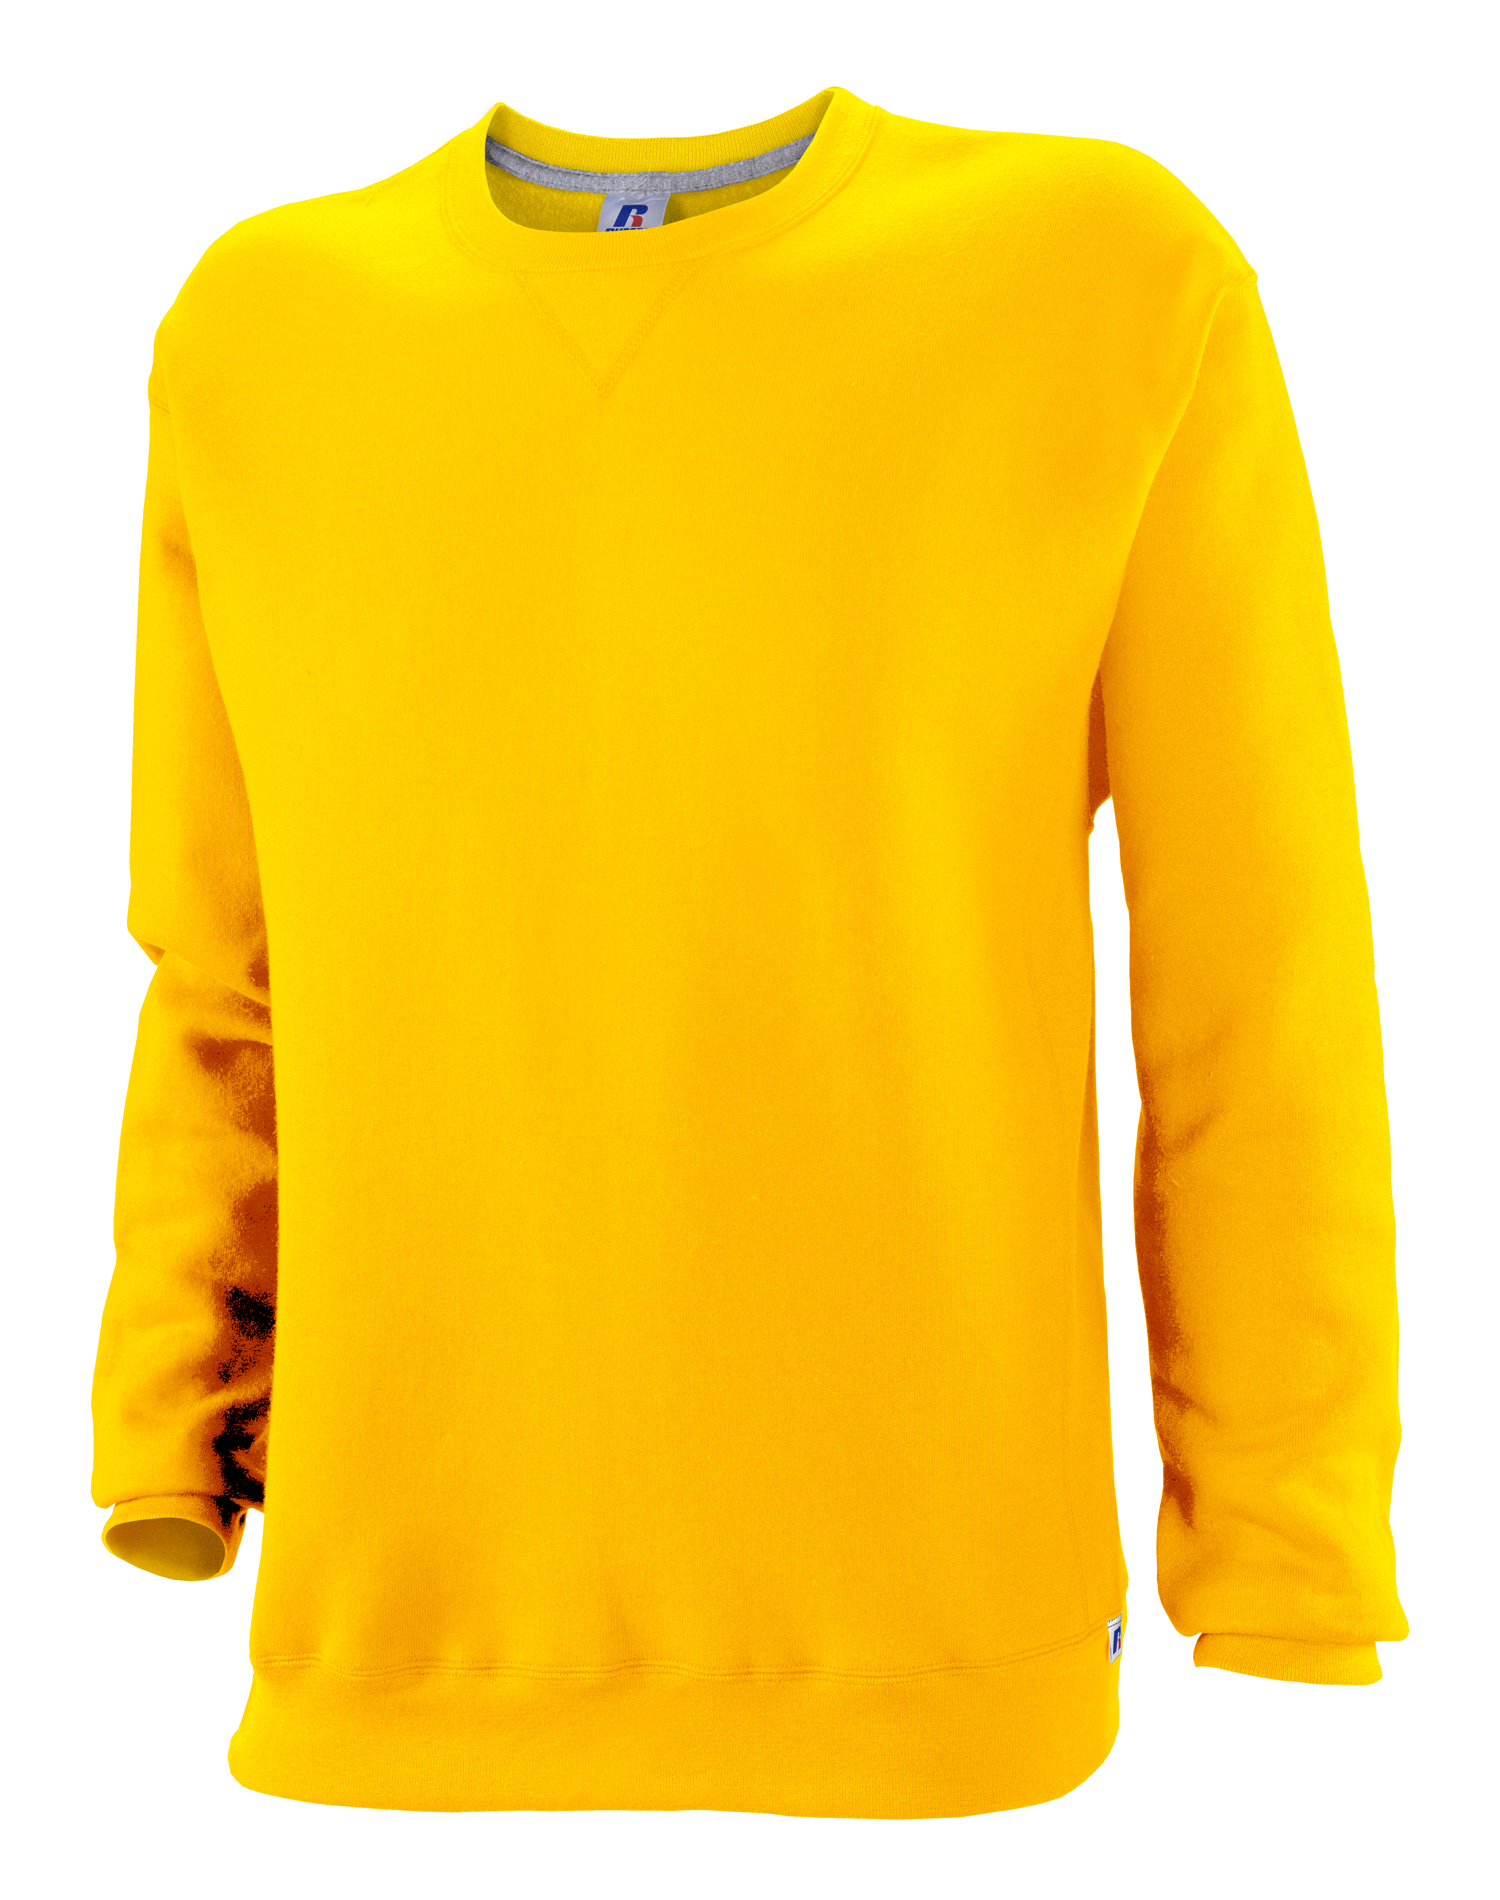 Russell 698 Dri-Power Sweatshirt